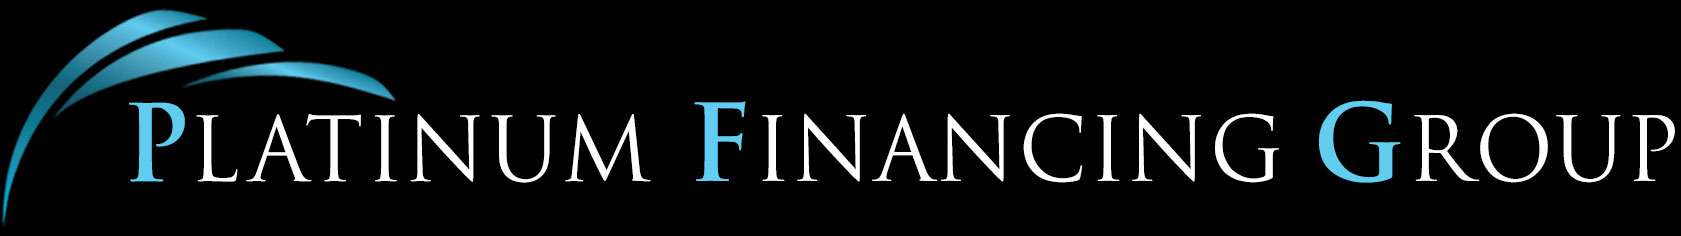 Platinum Financing Group Funds Businesses and Helps Consumers Obtain Millions of Dollars With Their 0% APR Funding Program 1